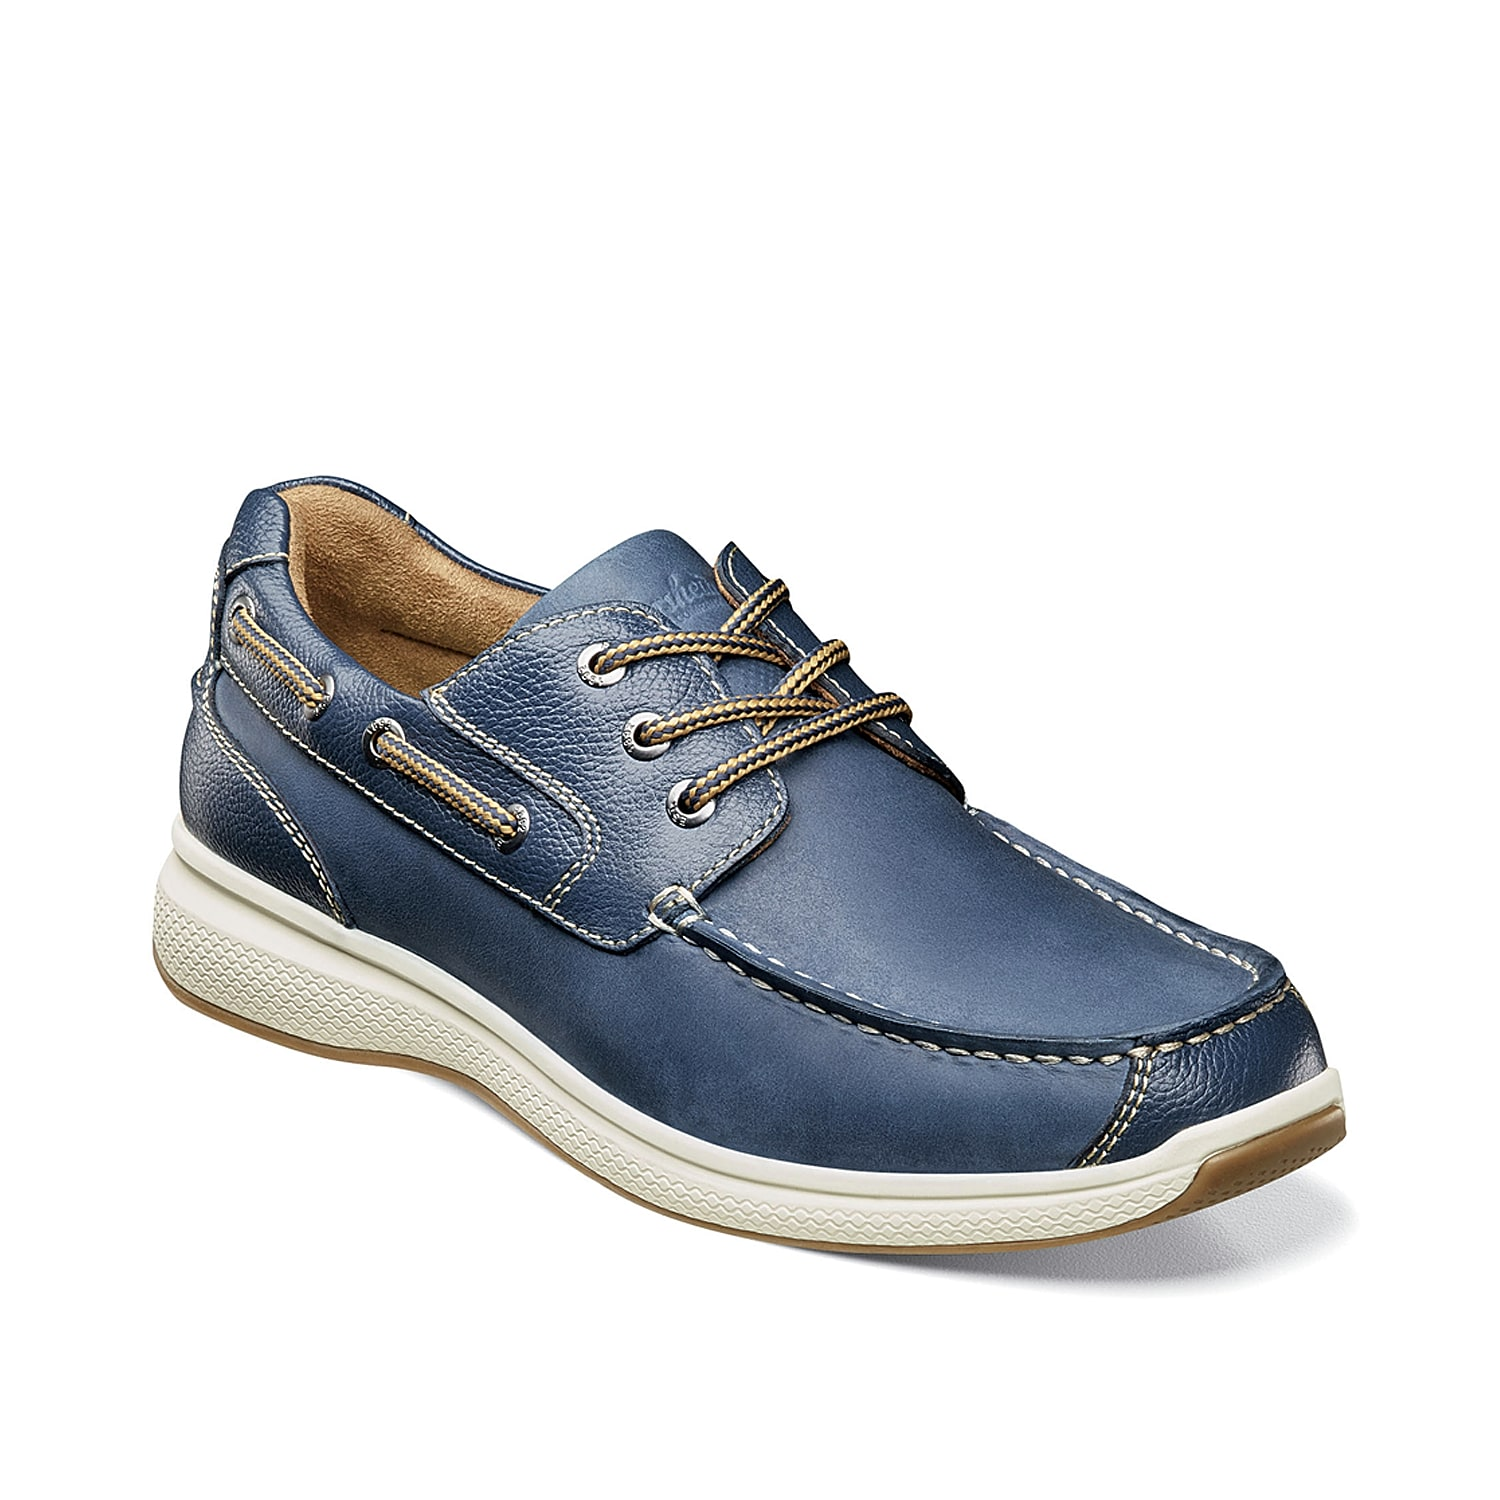 Feel dashing in the Great Lakes boat shoe from Florsheim. These leather slip-ons feature a classic design that will match with khaki shorts or dark wash jeans for styling versatility.